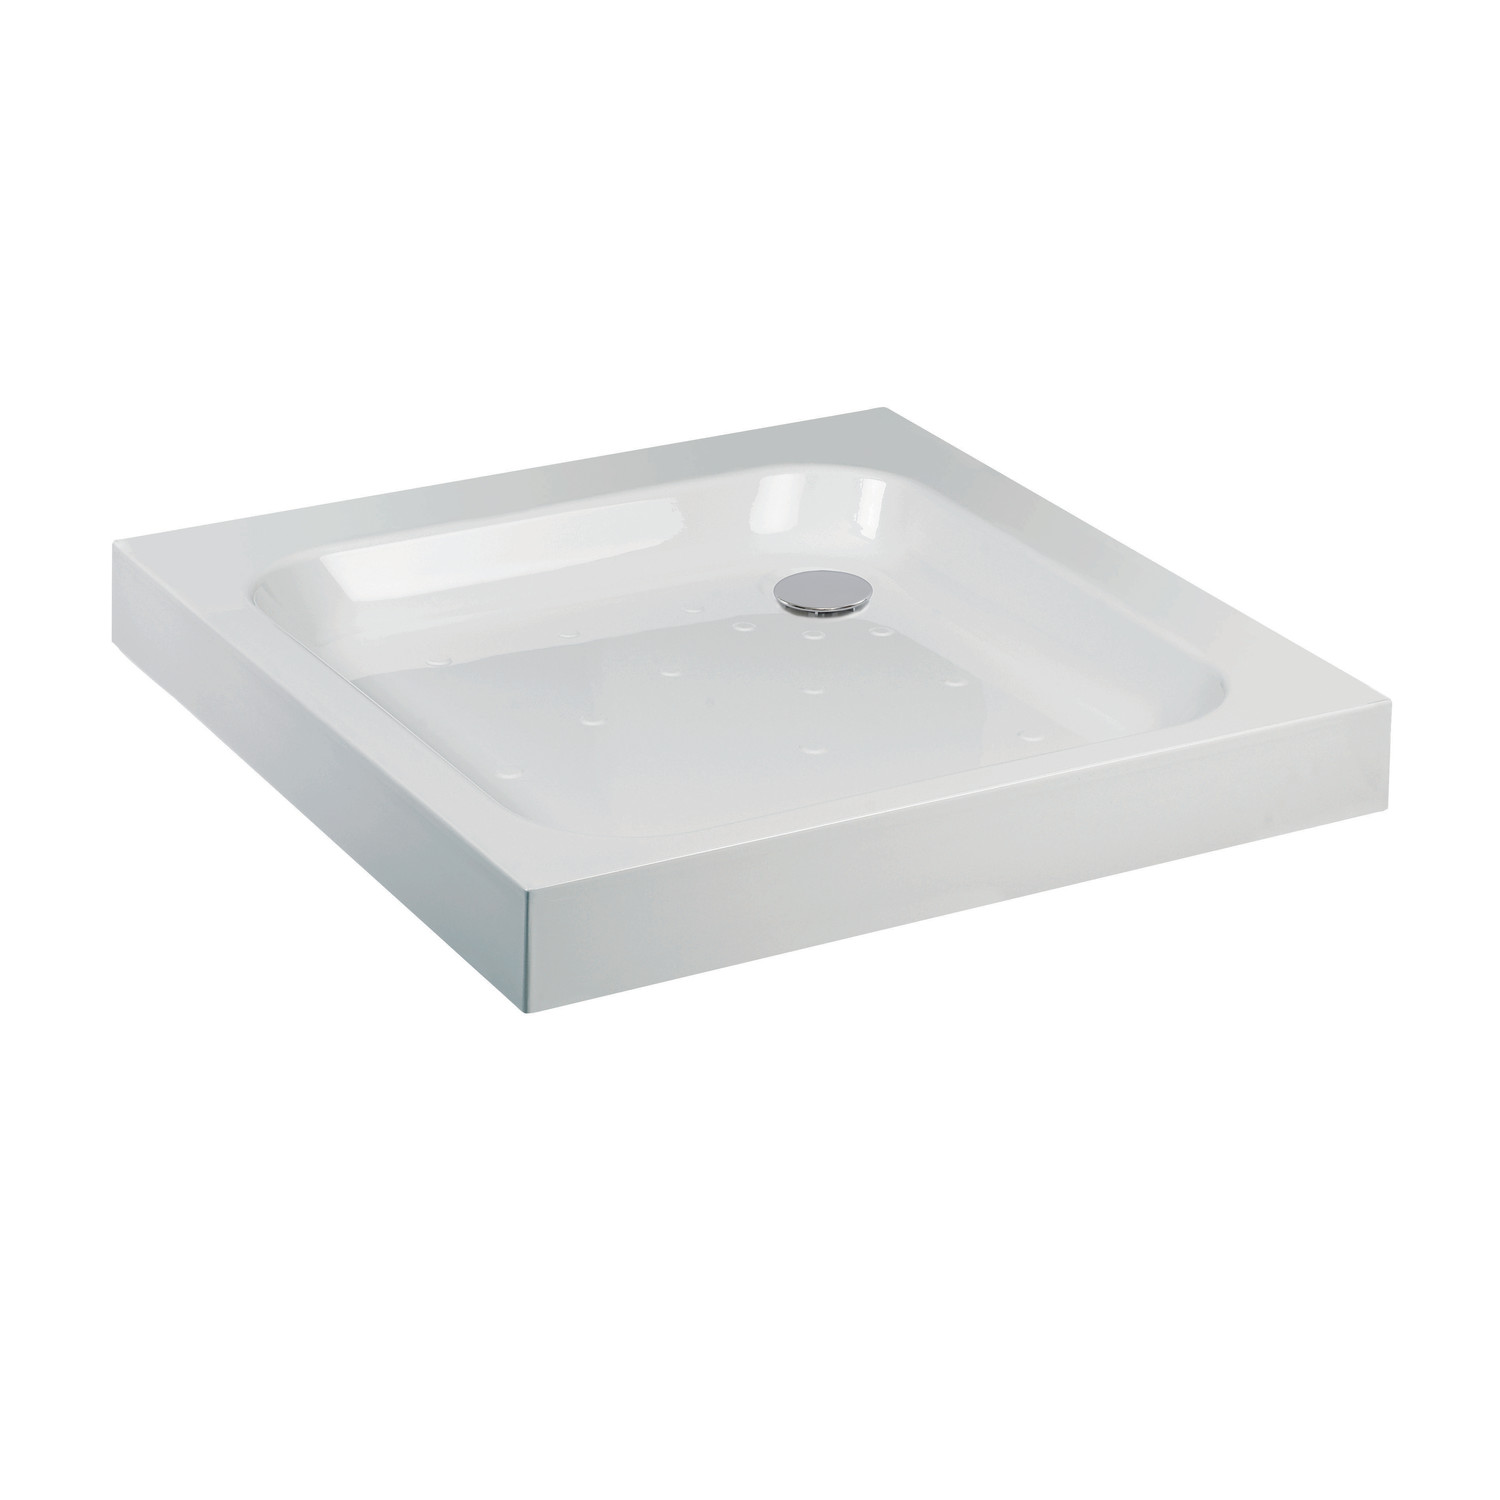 An image of Jt Ultracast White 700 X 700 Square Flat Top Shower Tray